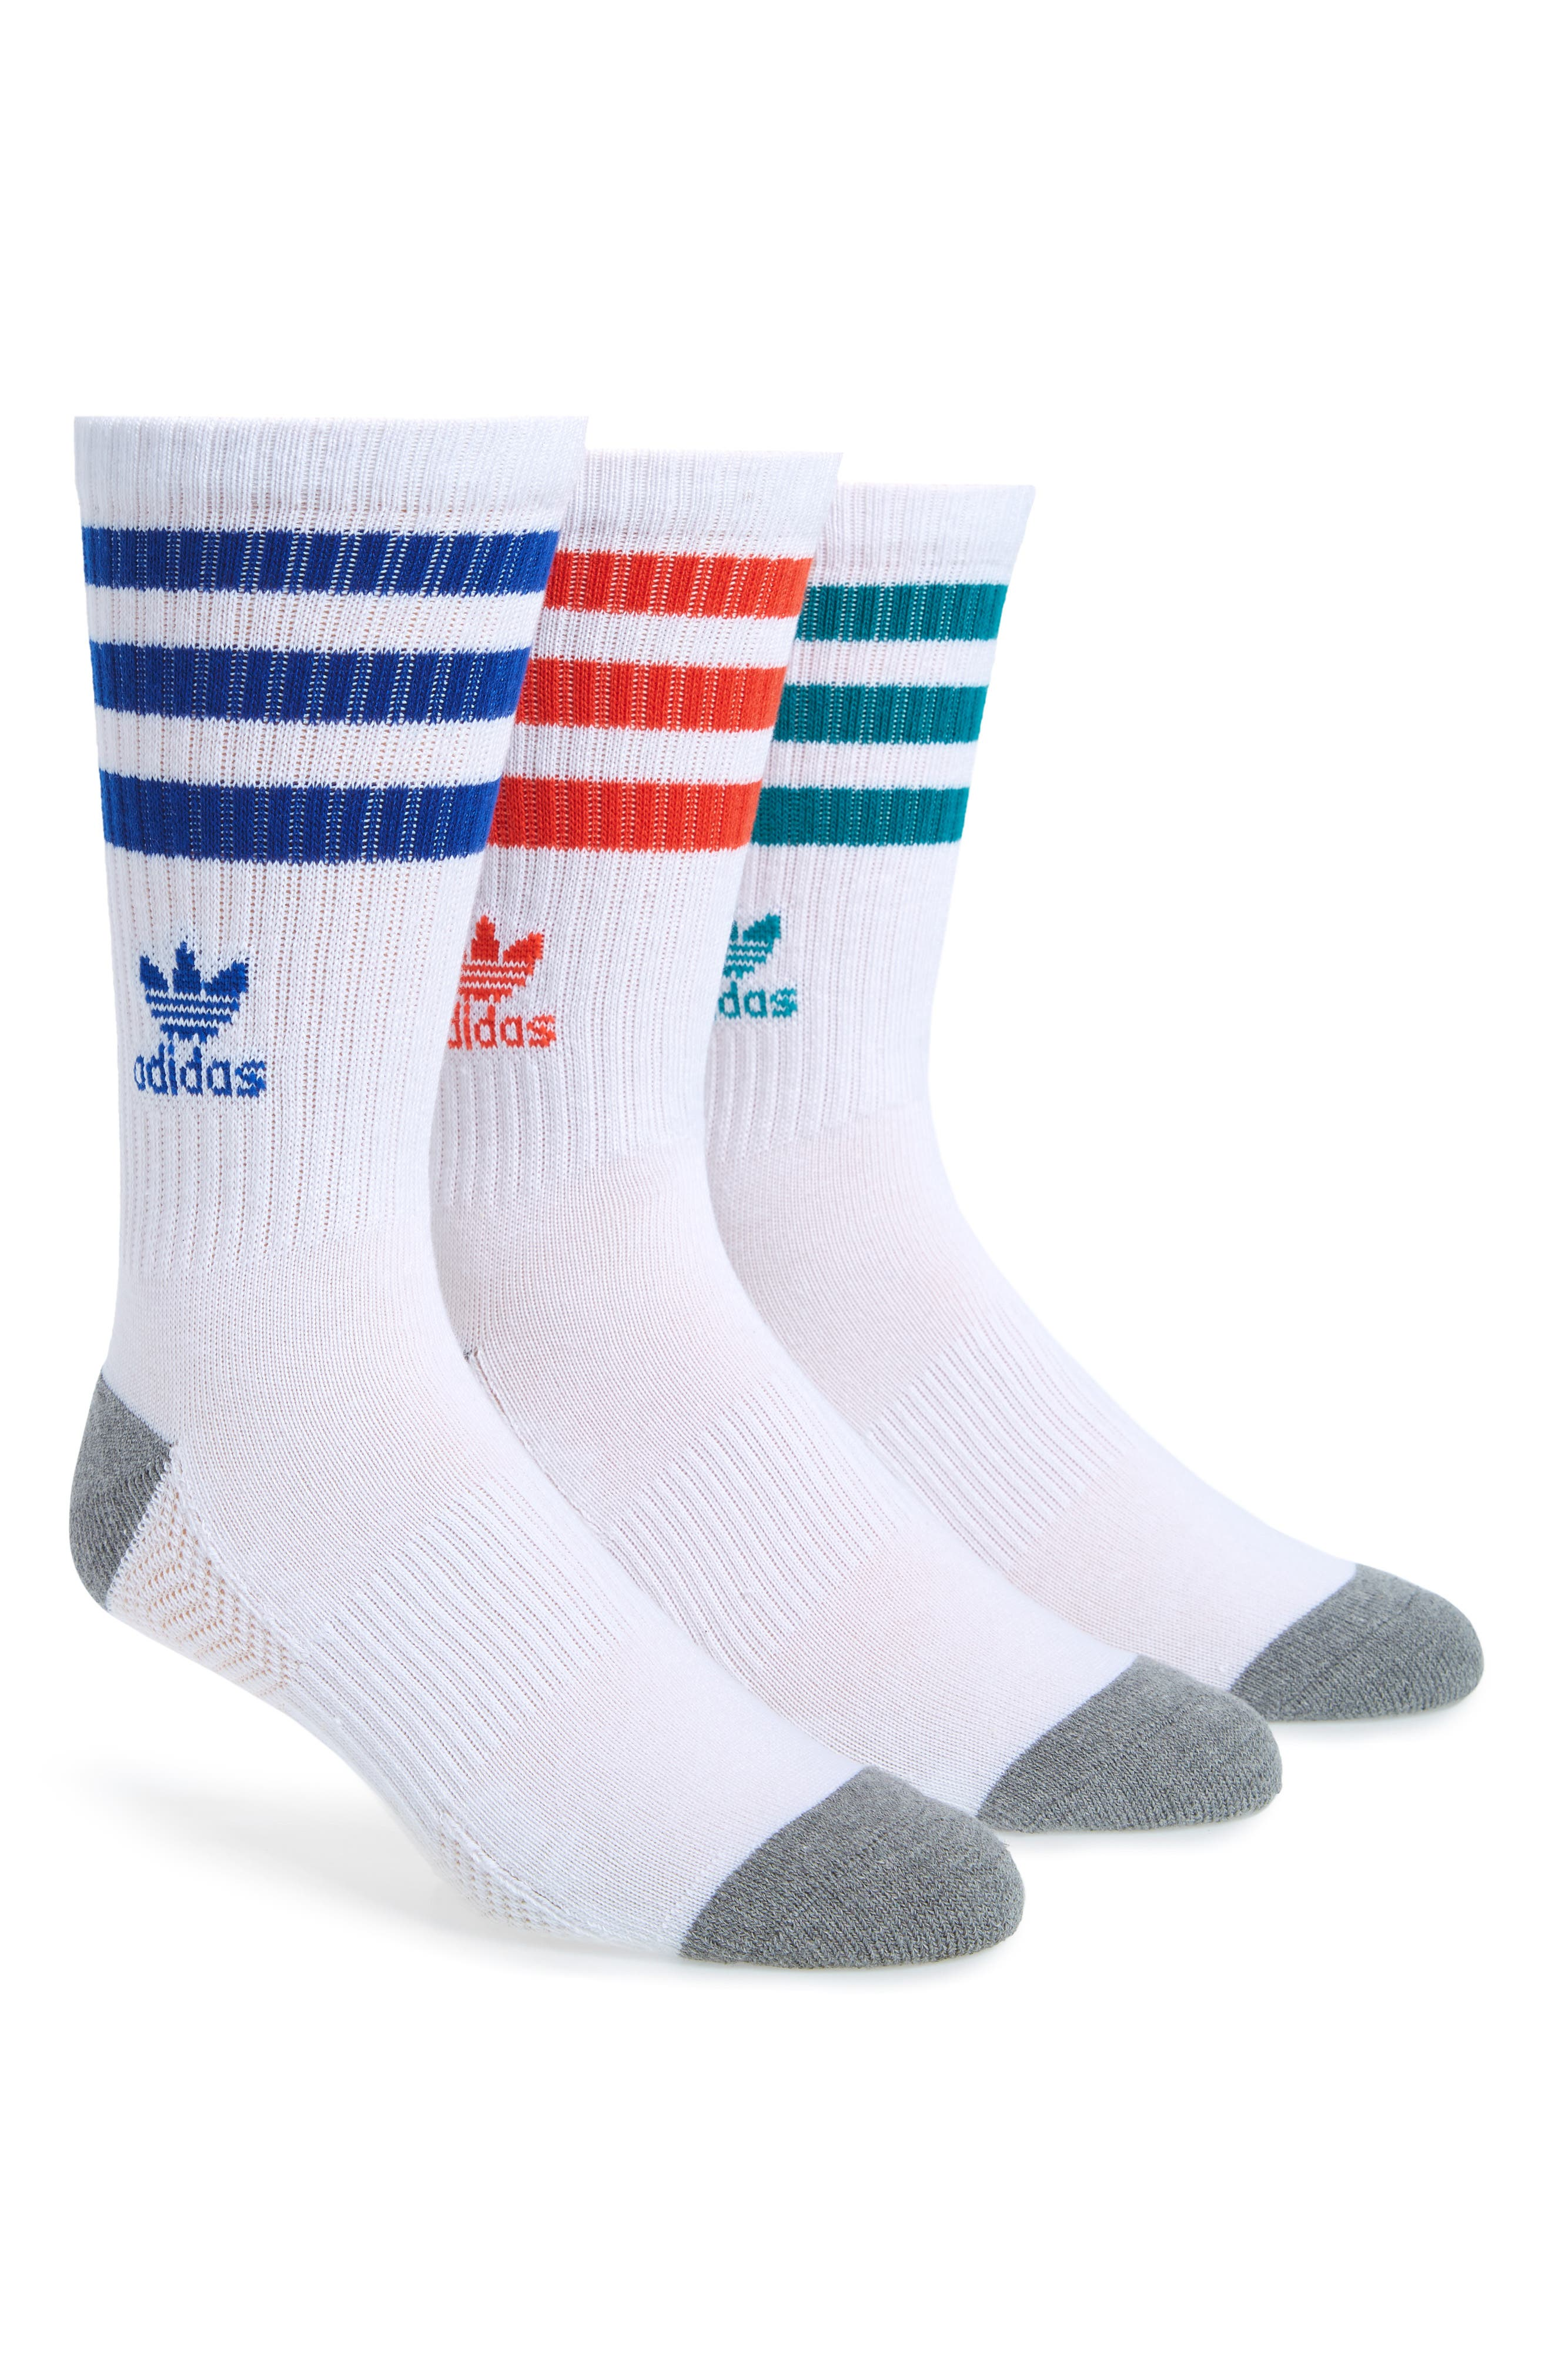 Roller Assorted 3-Pack Crew Socks,                         Main,                         color, White/ Royal/ Red/ Green